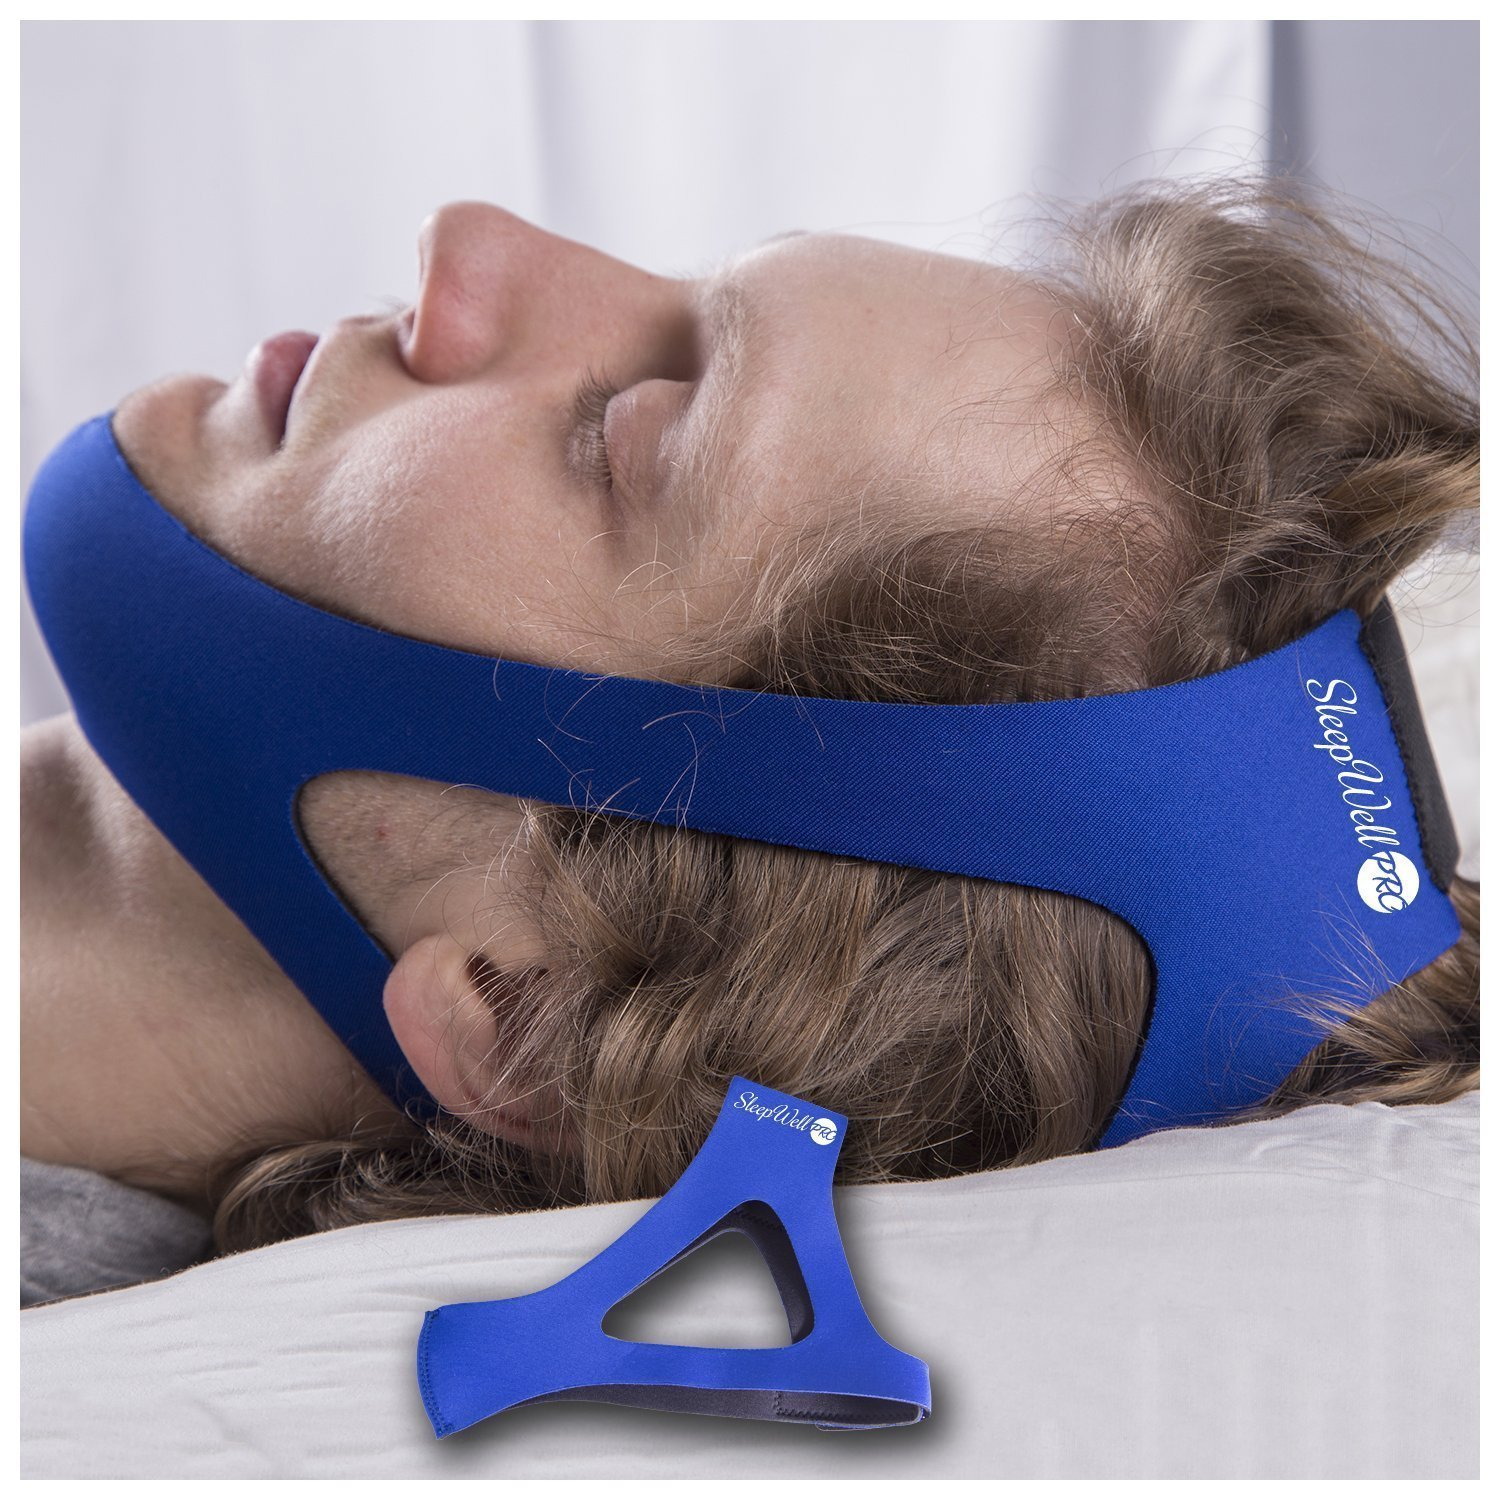 Easy Pro Adjustable Stop Snoring Chin Strap